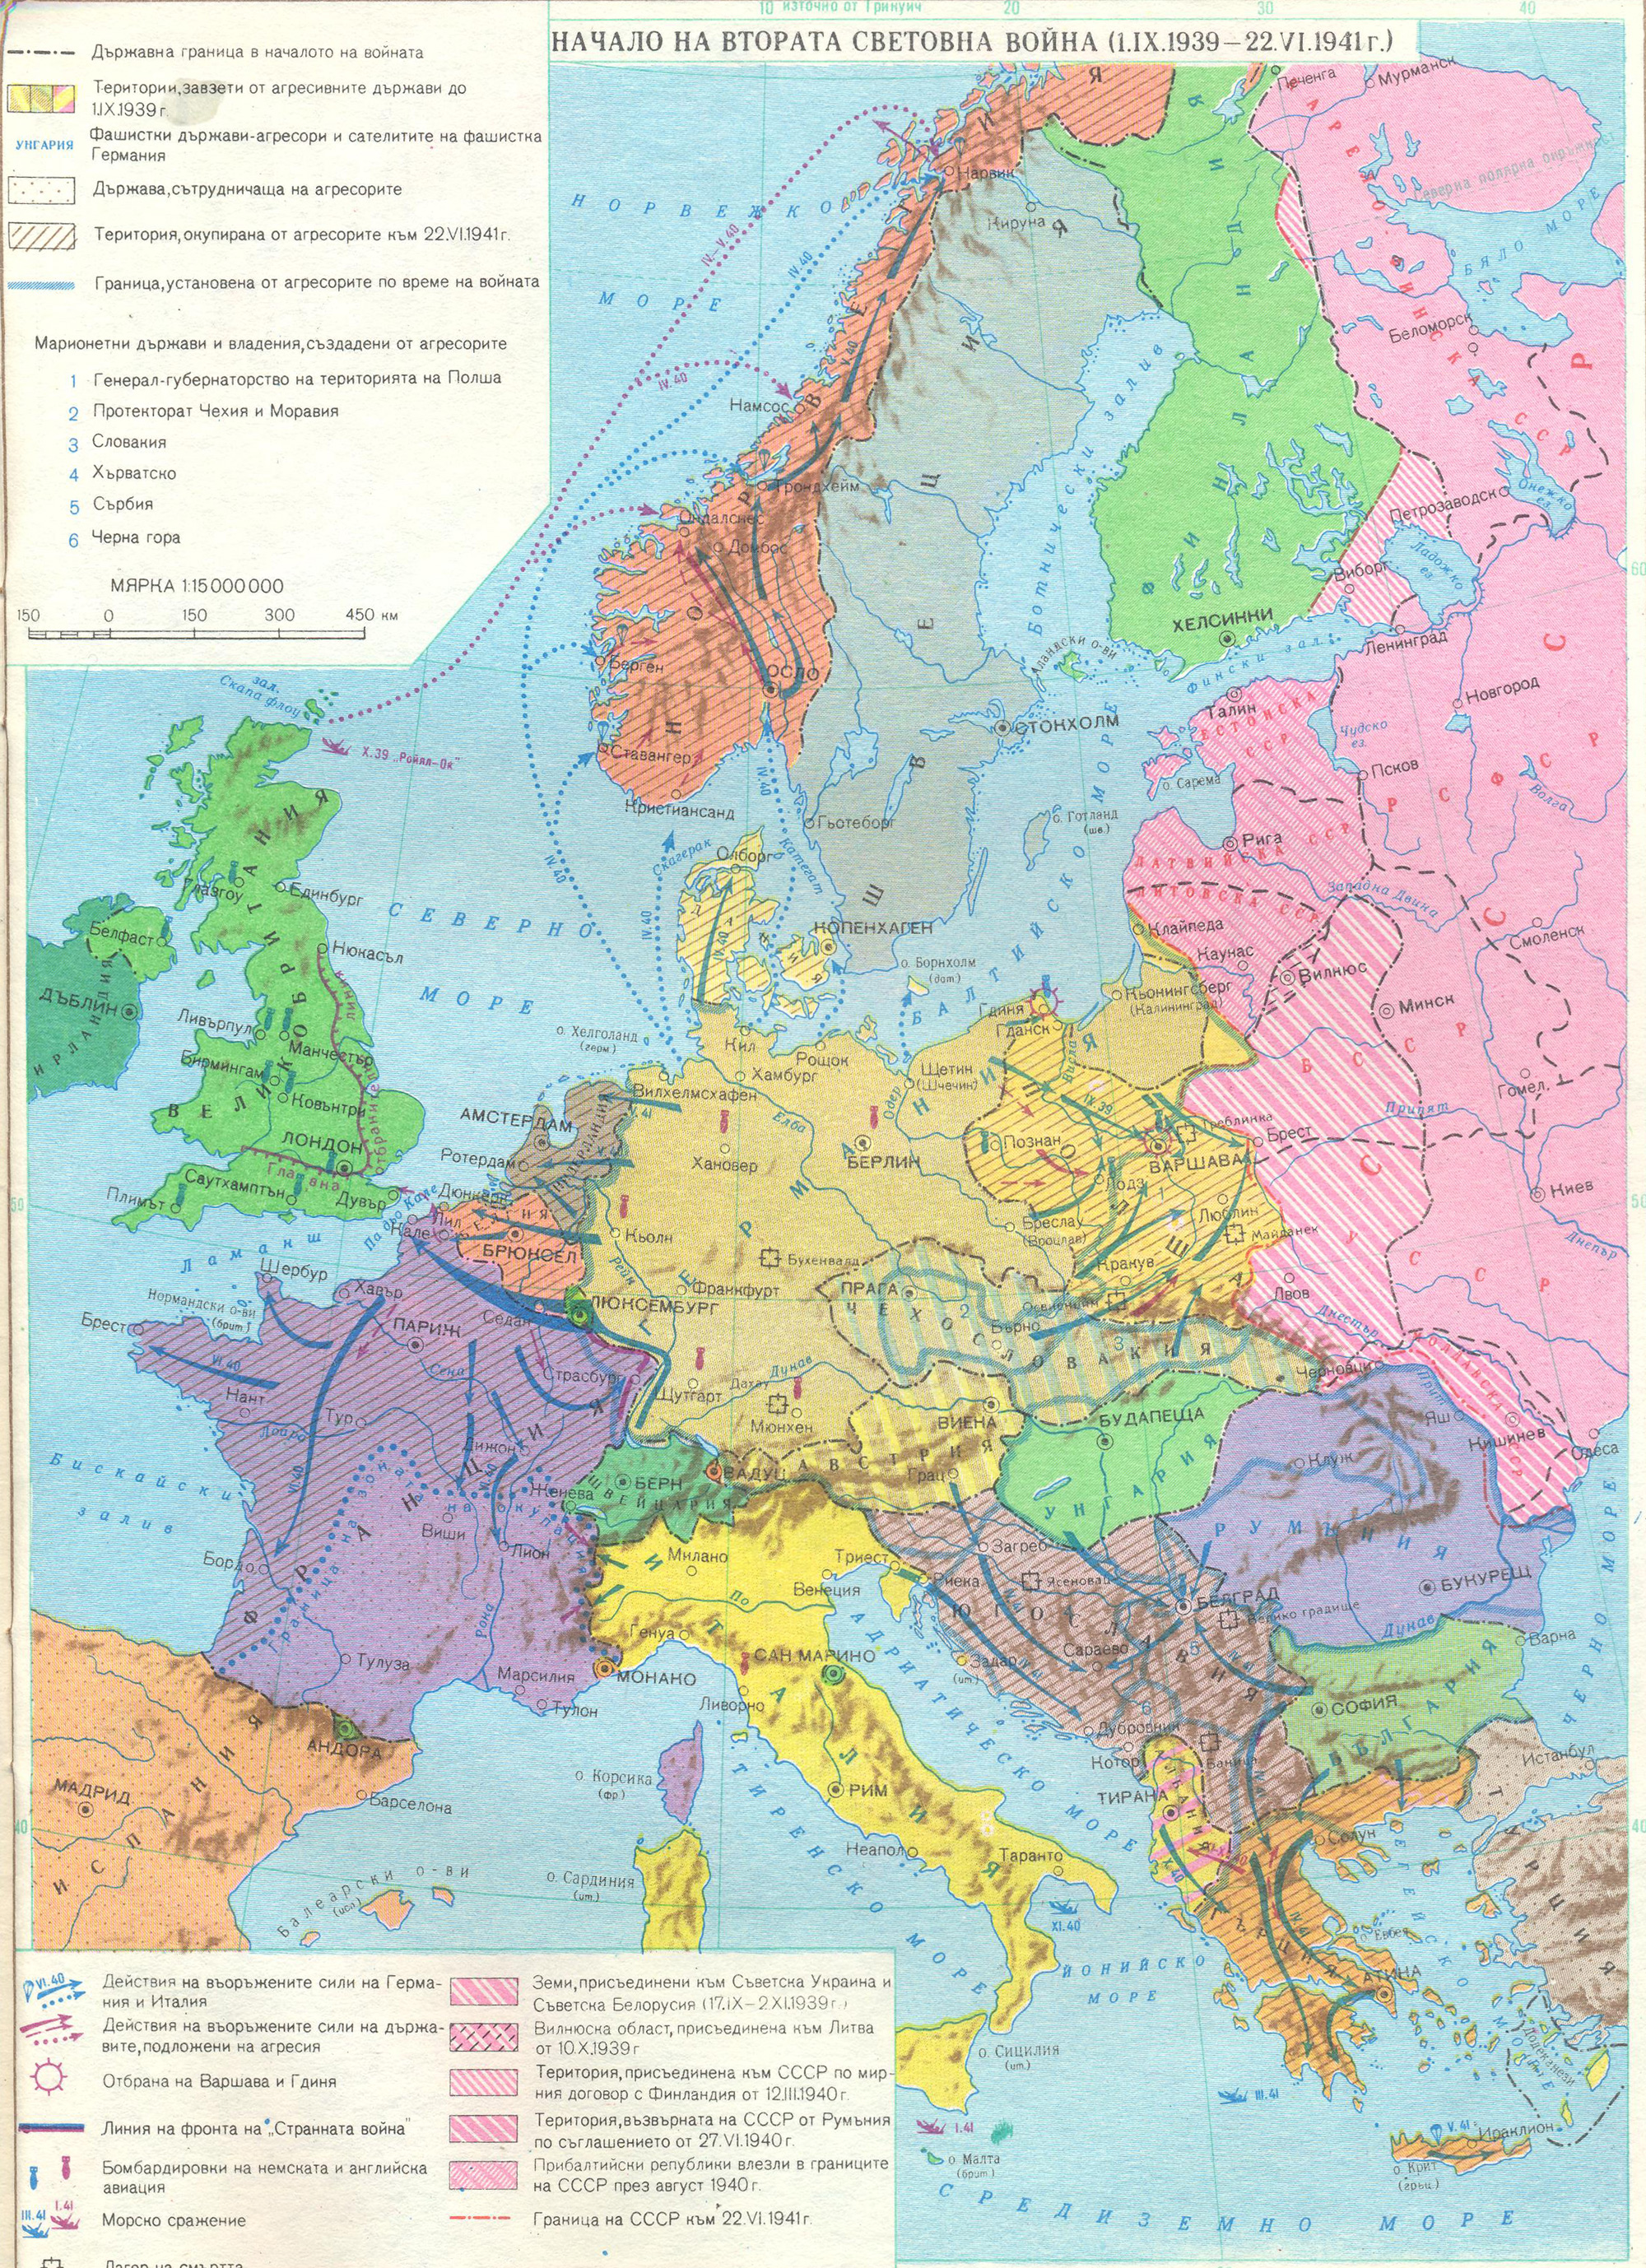 Start of World War II in Europe | HD Maps on map of pacific wwii, map of countries involved in wwii, blank map pacific theater wwii, map of wwii allies and axis, east asia map wwii, map of wwi, map of world war ii animated, map of concentration camps in wwii, american air force wwii, map of german occupation during ww2, map of occupied countries during wwii, map of north africa during ww2, map of japanese control during ww2, geography of europe wwii, map of poland 1915, map of japanese occupation during wwii, map of north africa and south west asia political, map of ljubljana wwii, map of european theatre ww2, map north africa campaign ww2,